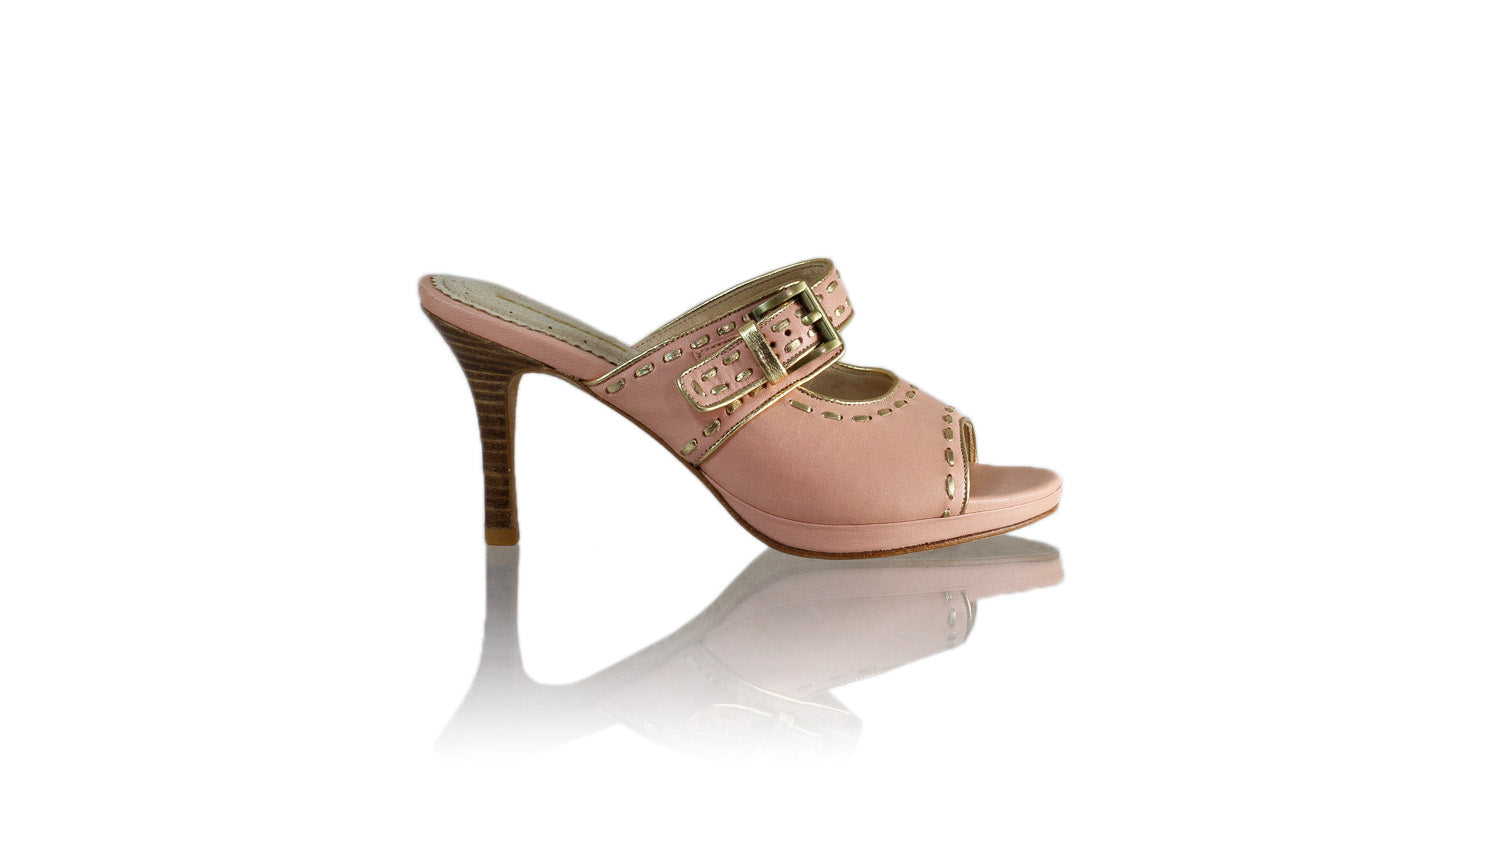 Leather-shoes-Alex 90mm SH PF - Soft Pink & Gold-sandals higheel-NILUH DJELANTIK-NILUH DJELANTIK